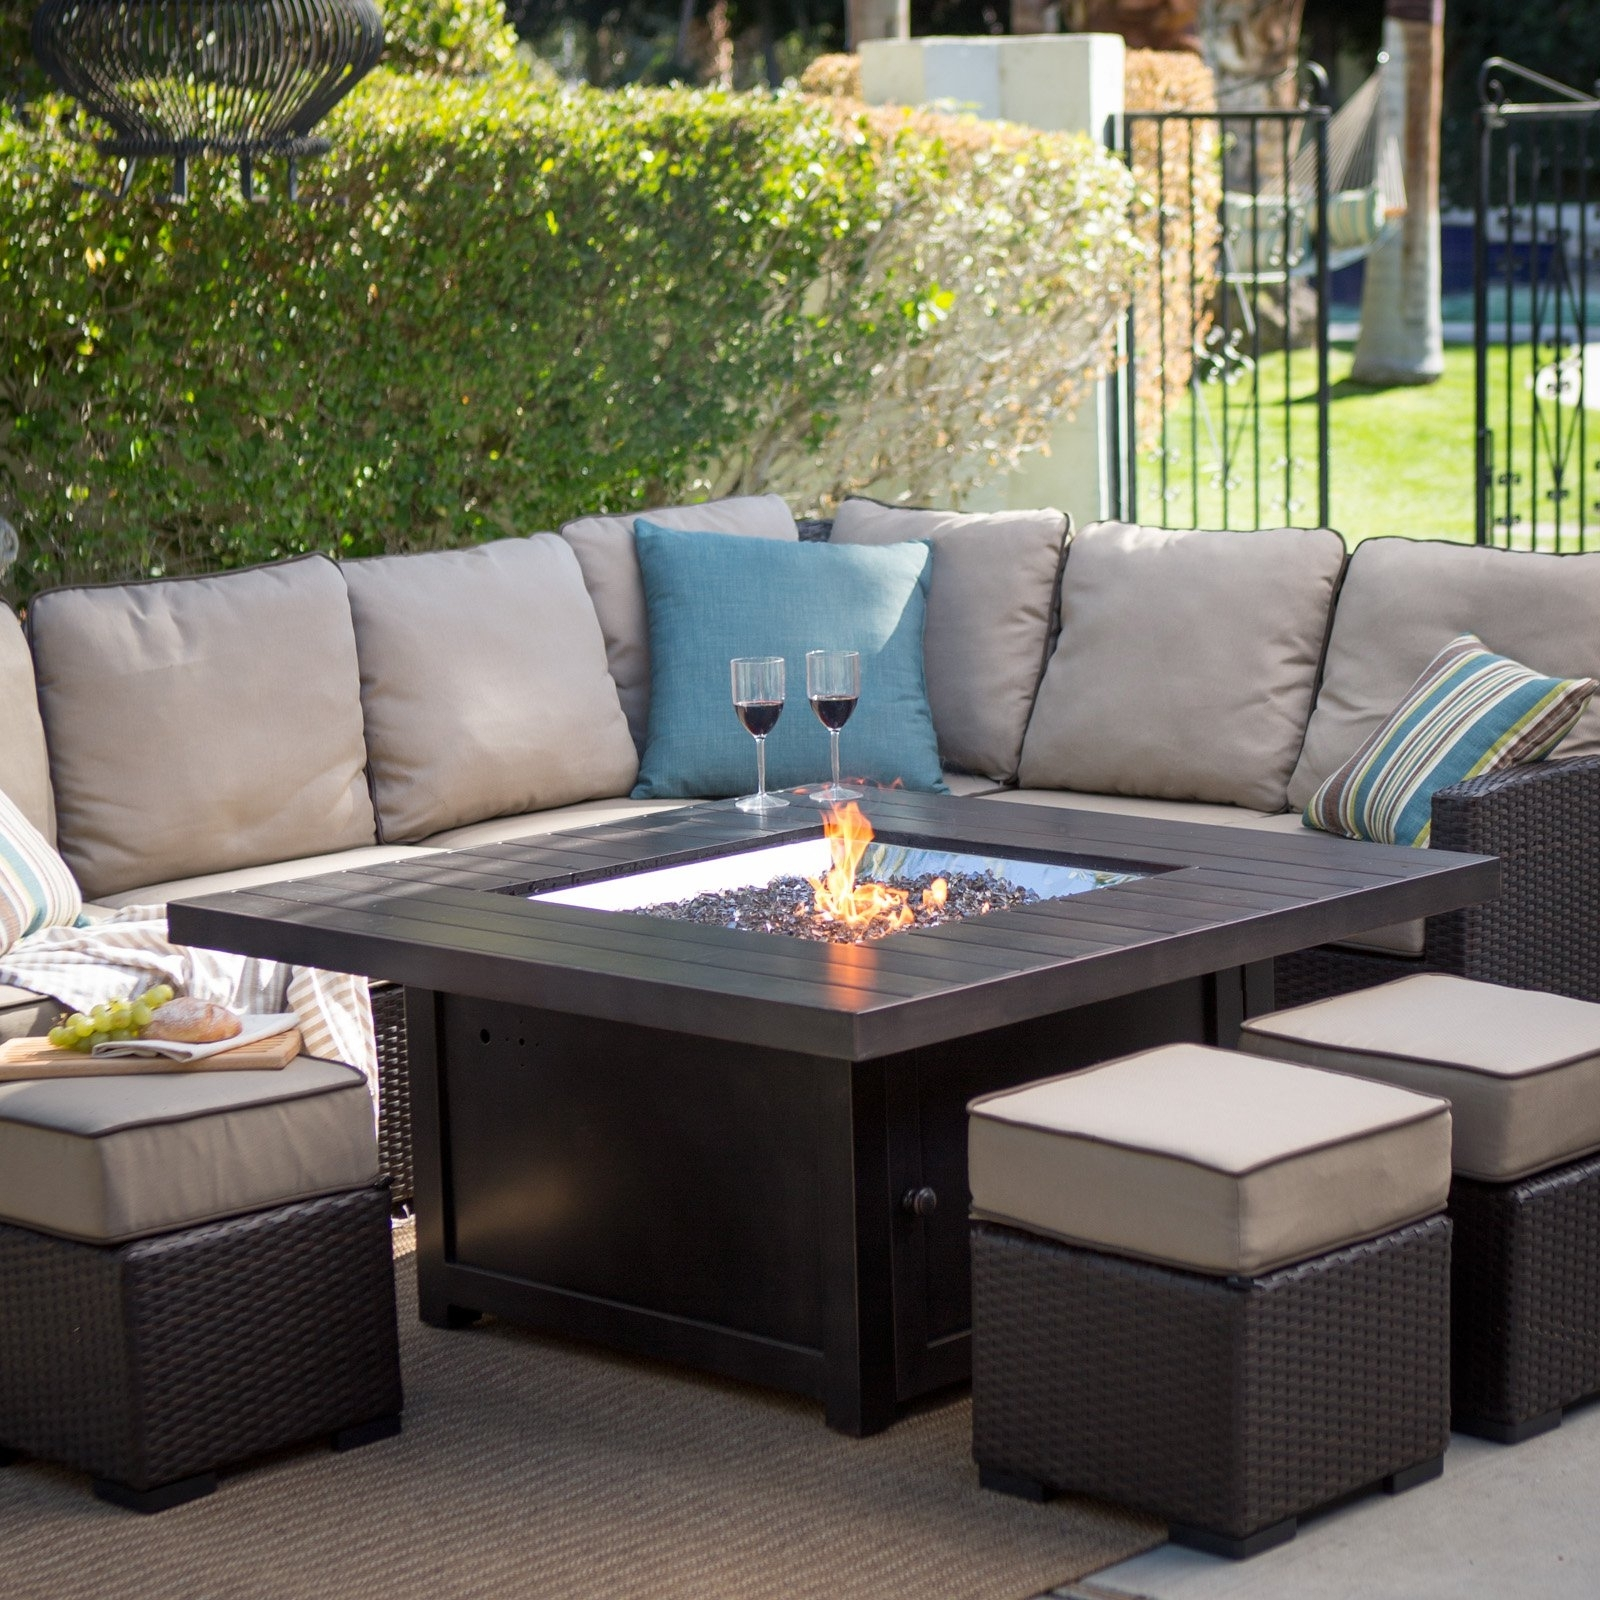 Most Recent Furniture: High Quality Patio Furniture Columbus Ohio And Fire Pit Regarding Patio Conversation Sets With Fire Pit Table (View 3 of 20)